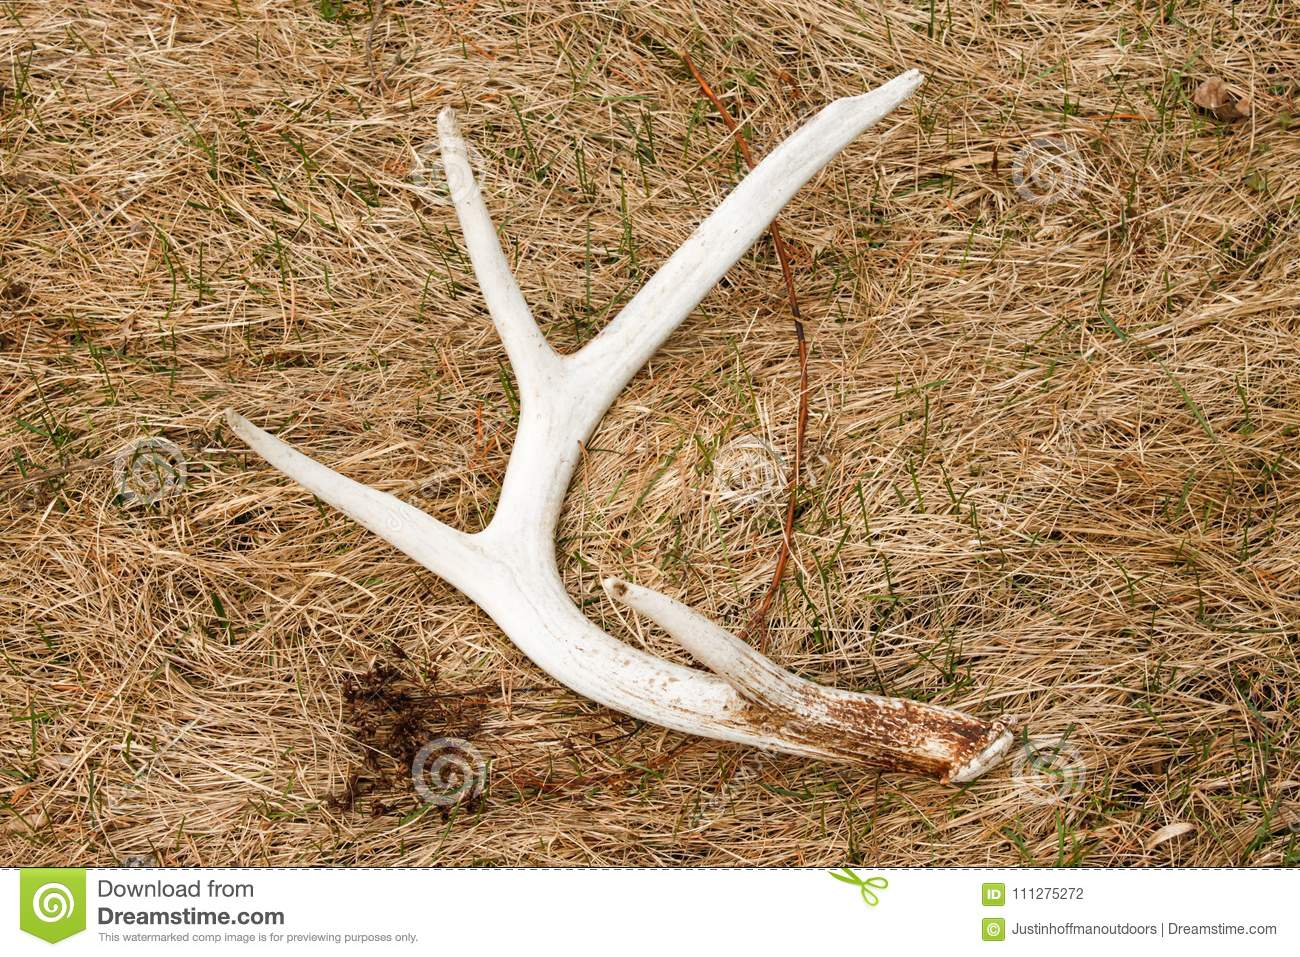 Whitetail Deer Shed Antler in Field